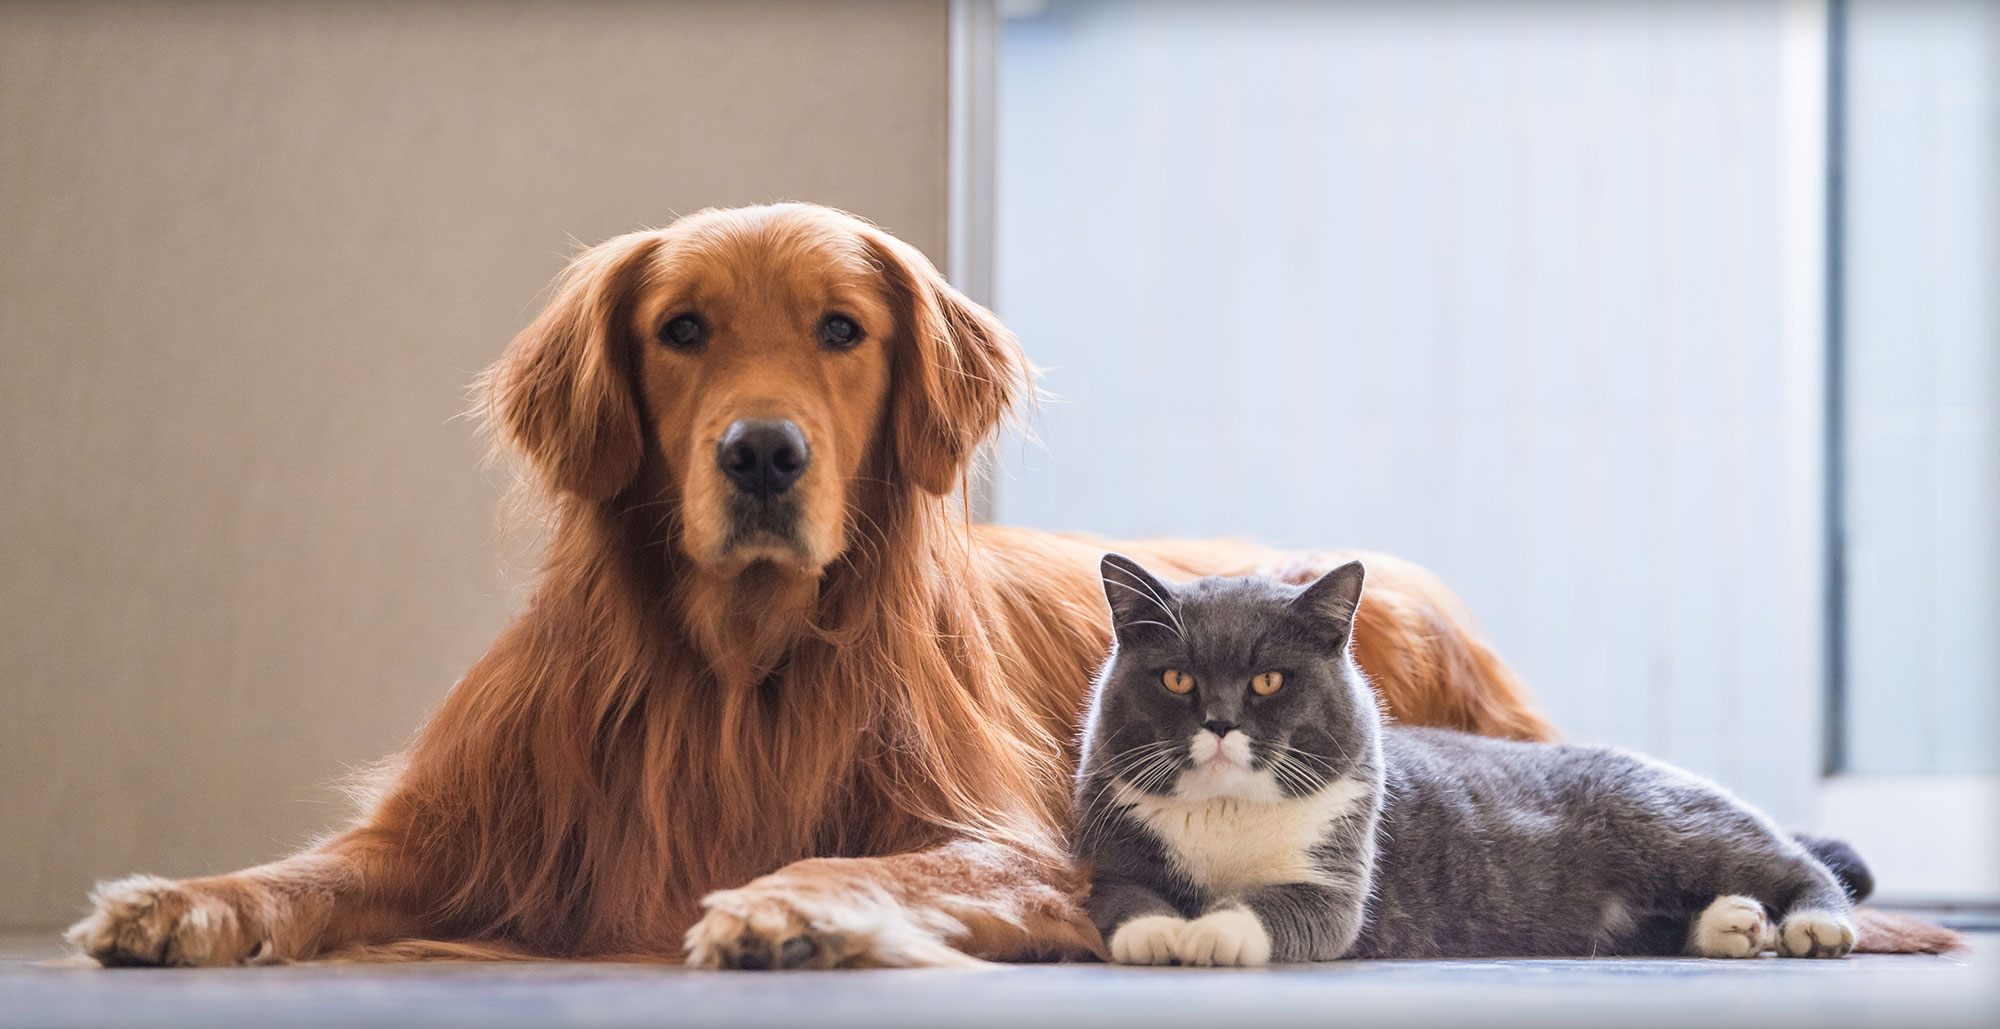 Golden Retriever and Gray and White Cat